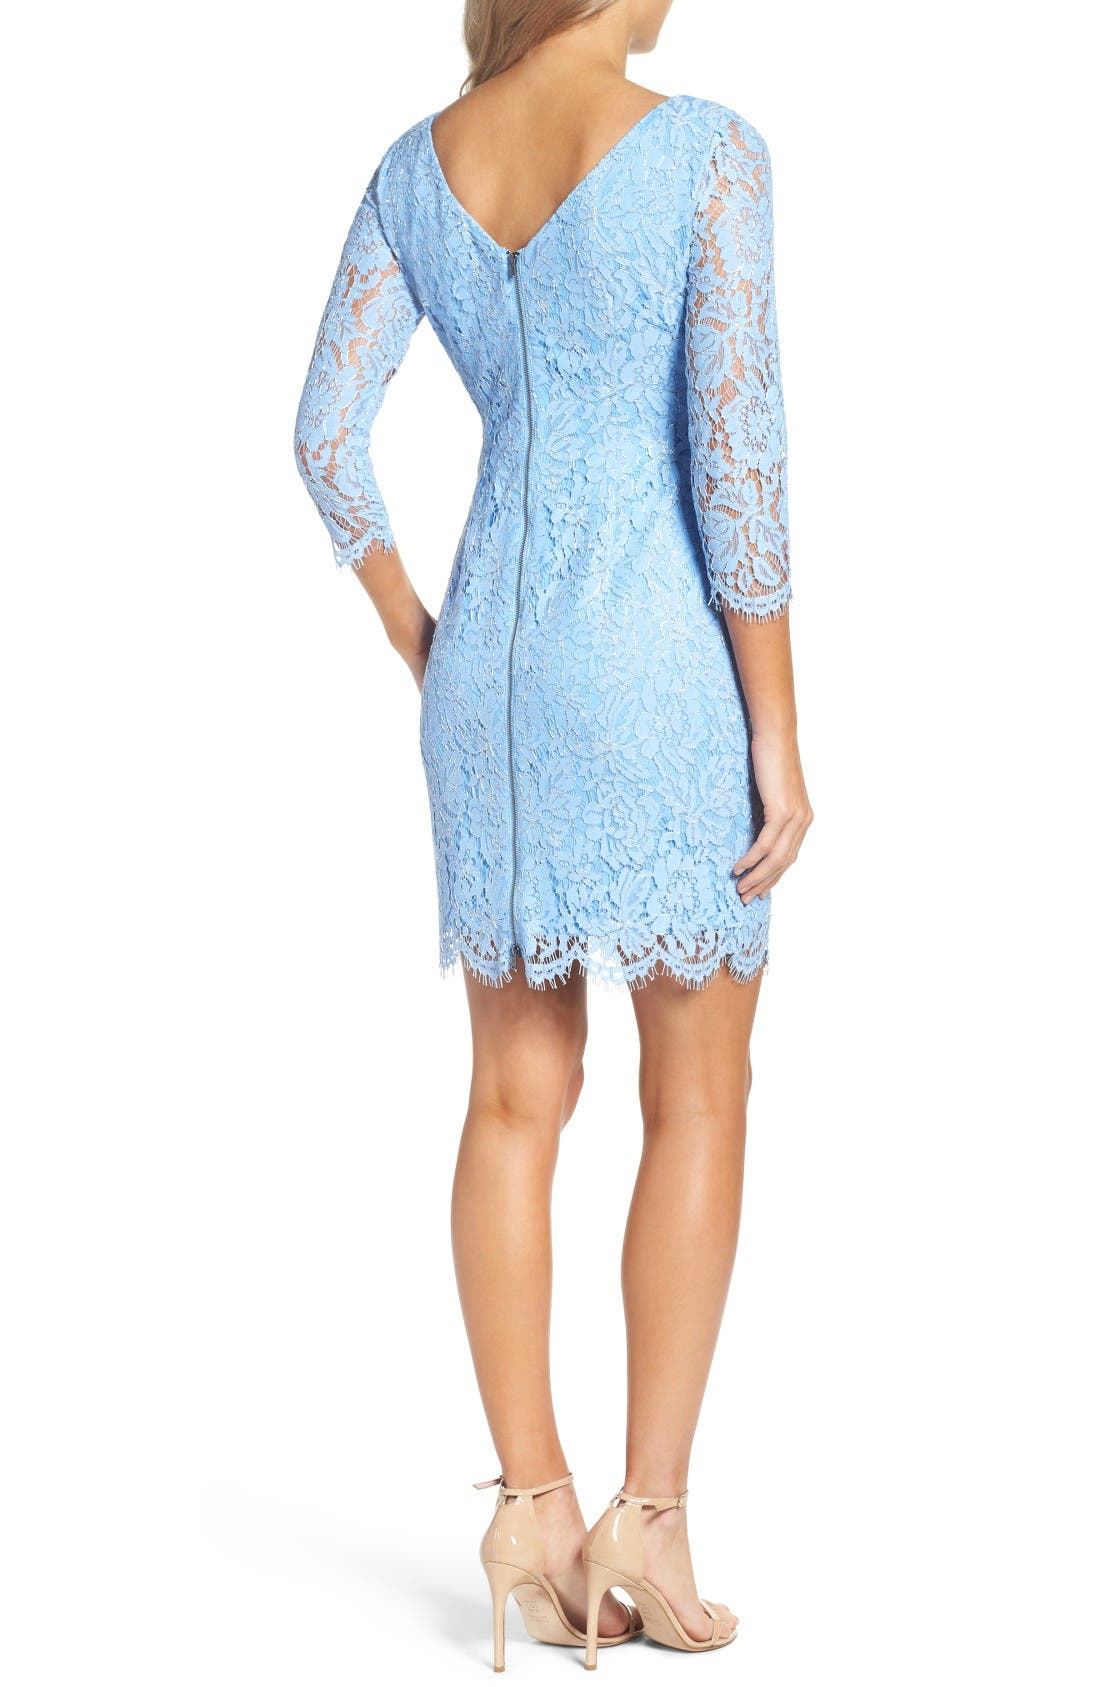 Alternate Image 2  - Adrianna Papell Metallic Lace Minidress (Regular & Petite)